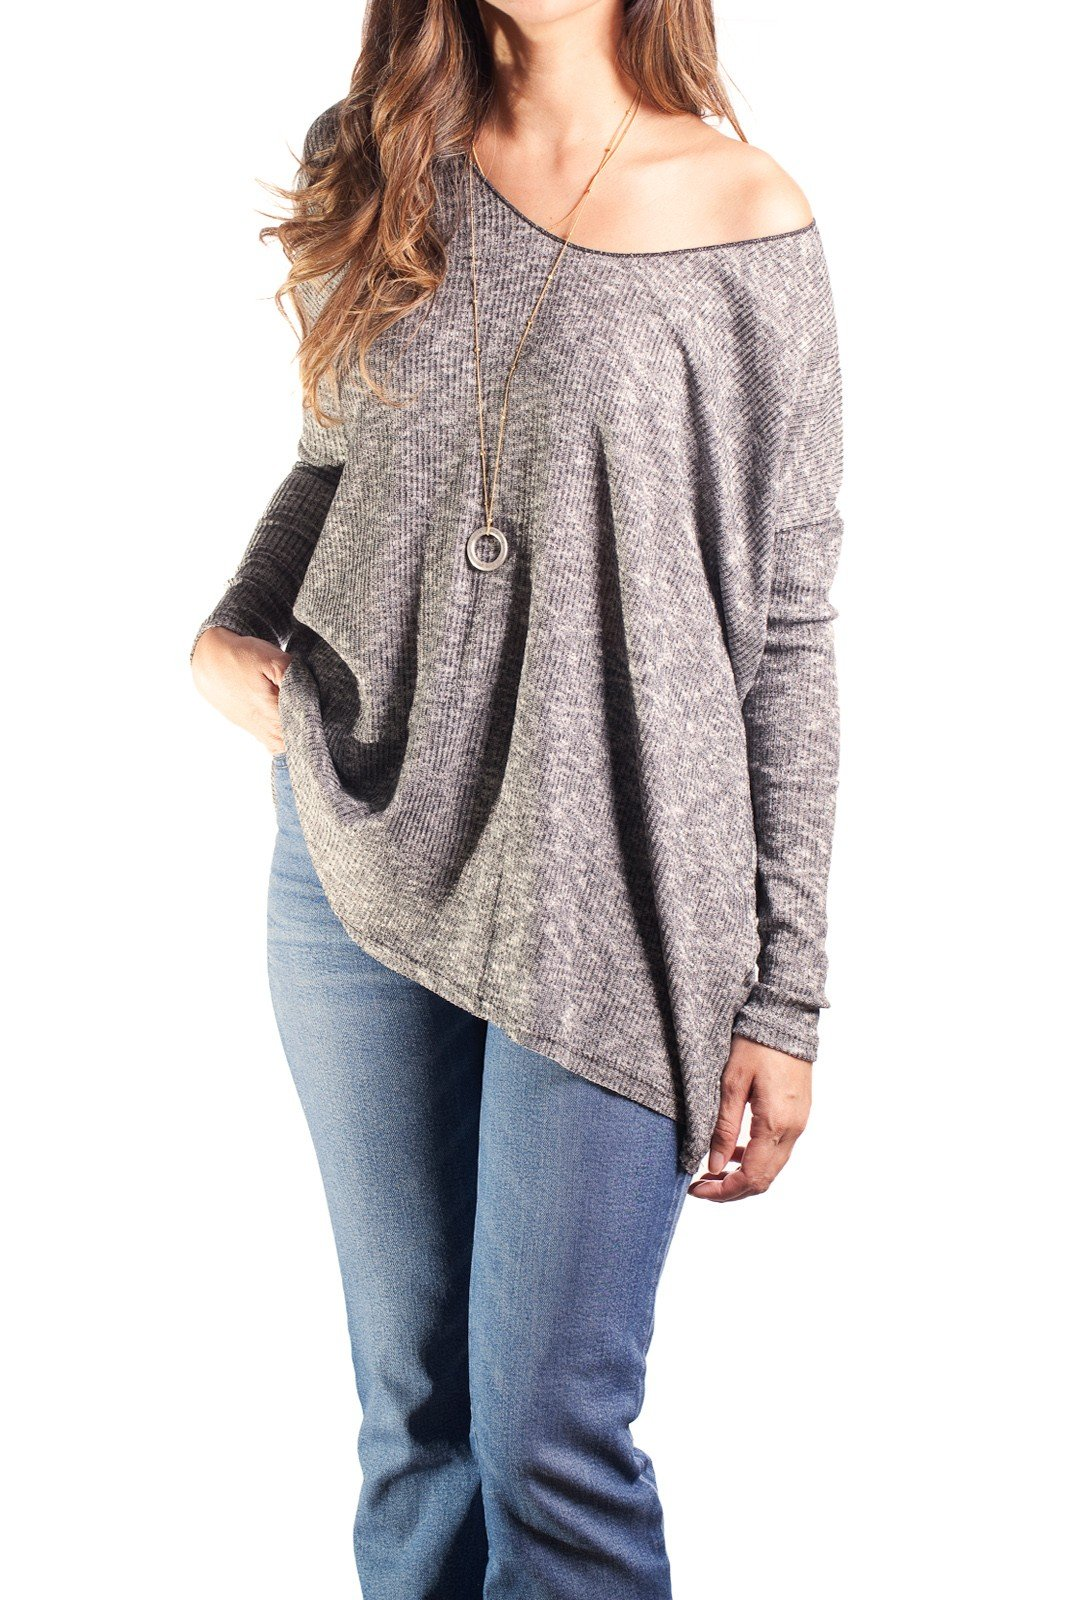 Dazly Womens Oversized Knitted Loose Lightweight Sweater Top Grey M